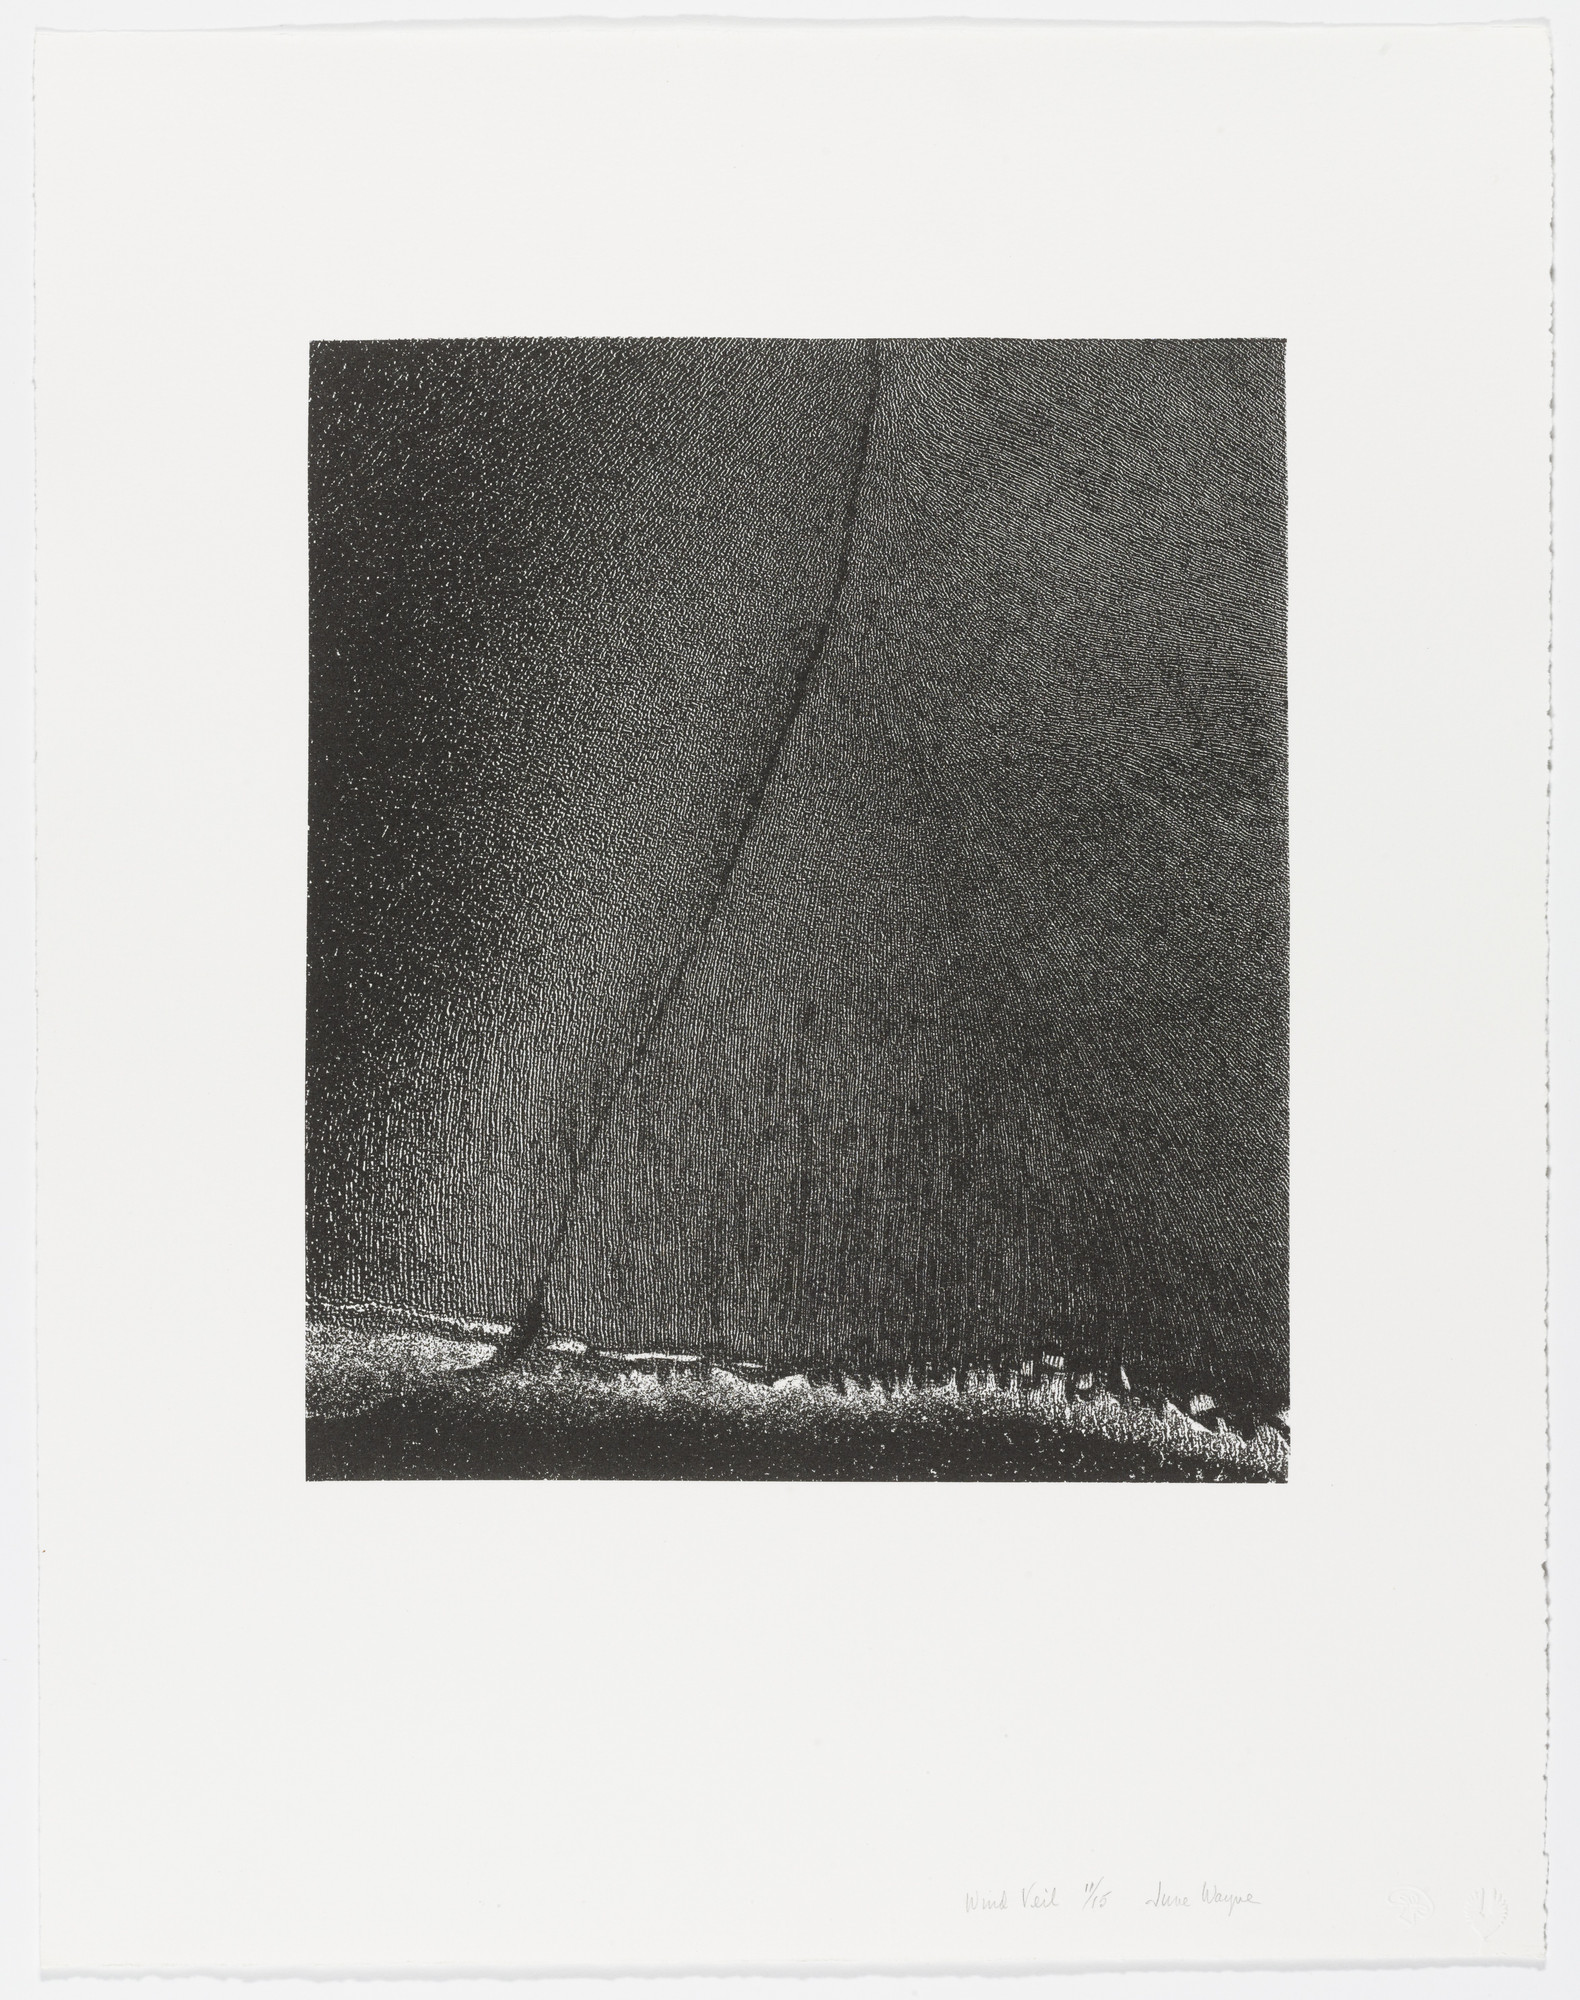 June Wayne. Wind Veil from Stellar Winds. 1978, published 1979